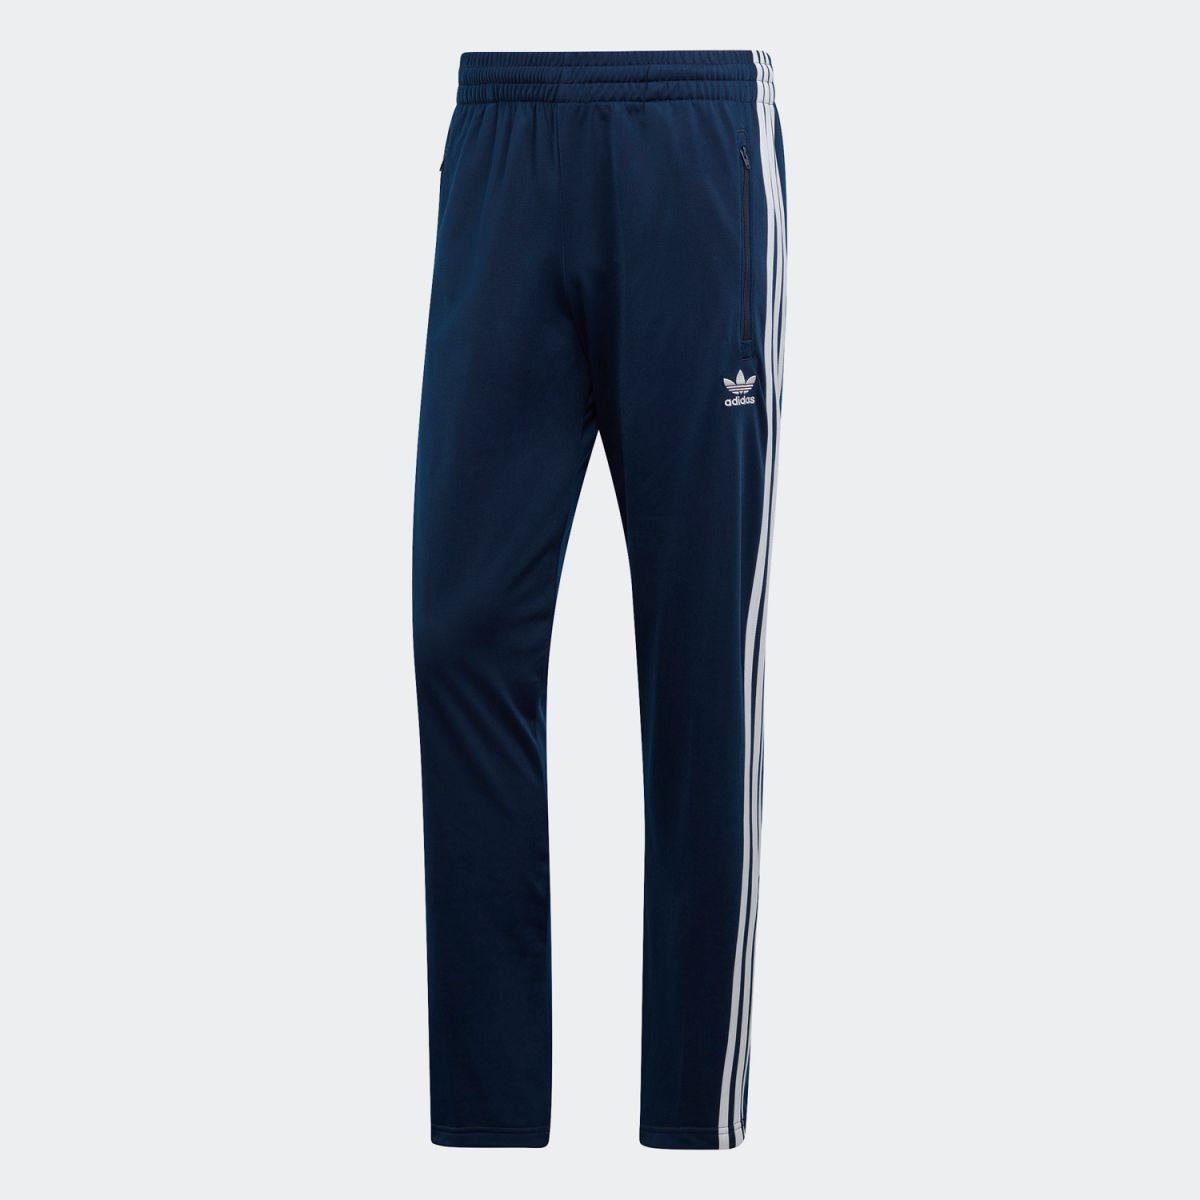 adidas pants firebird